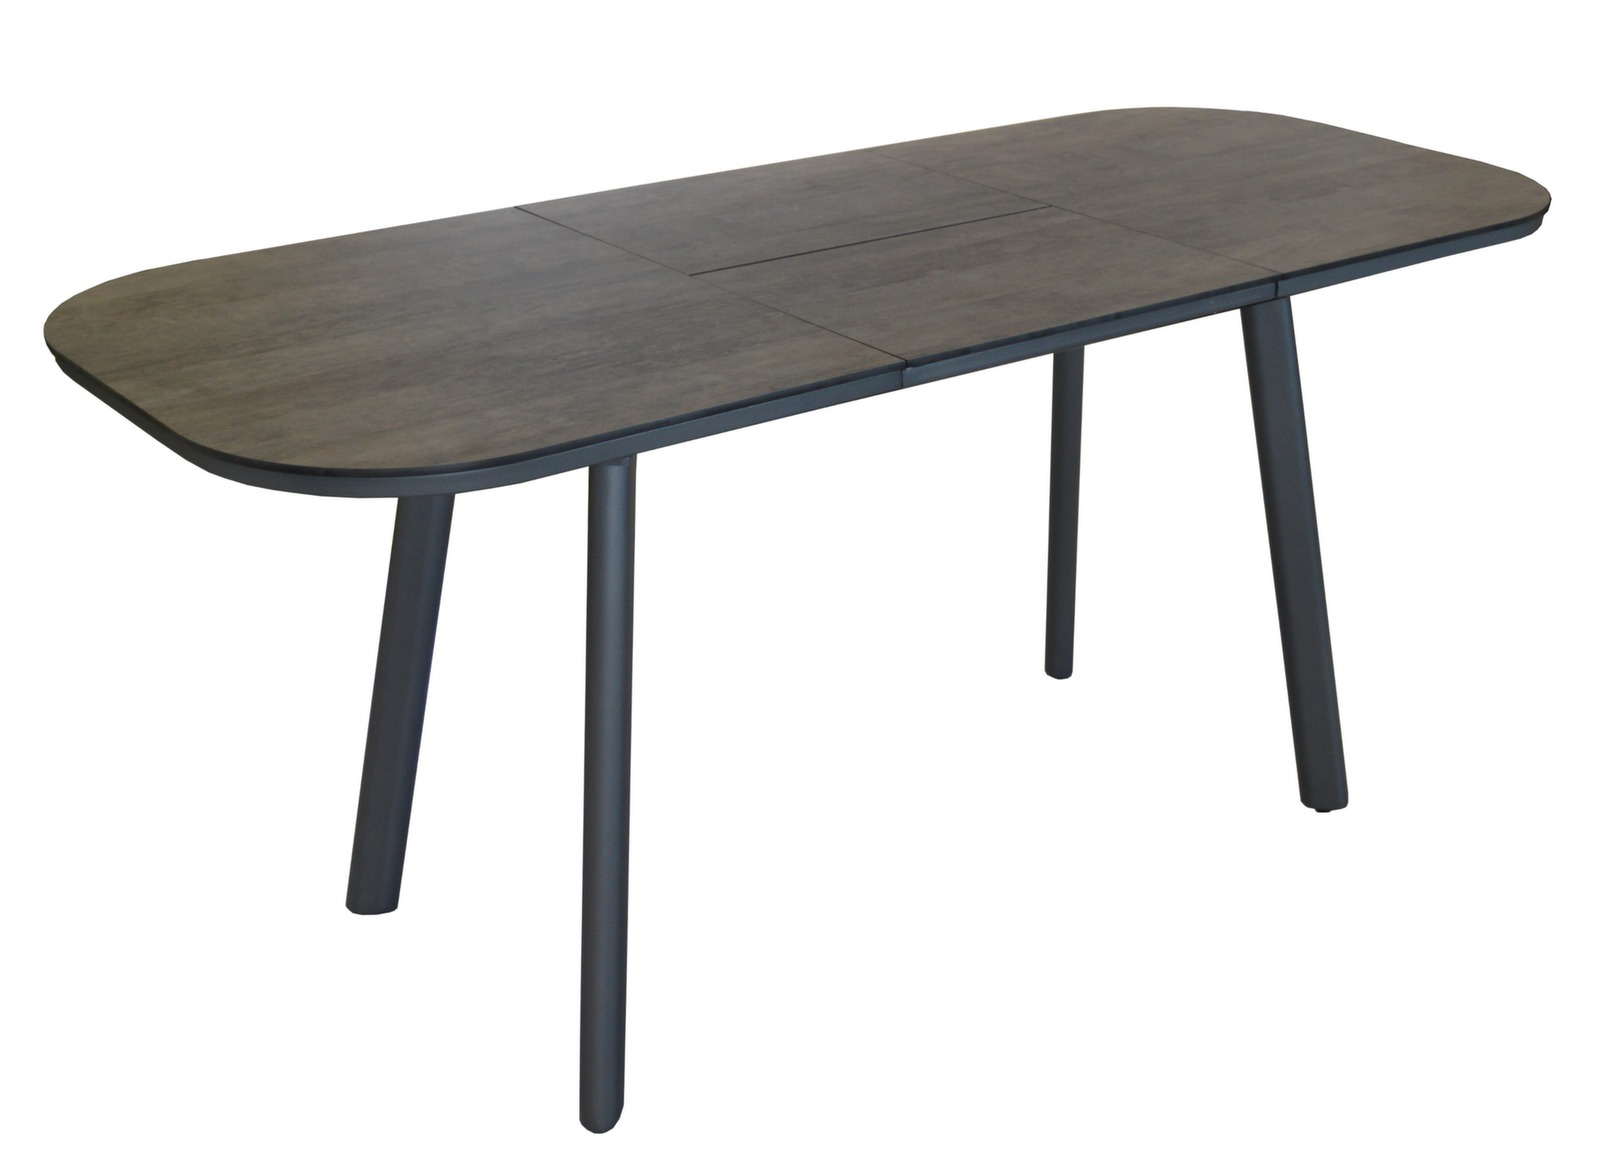 Table paradisio 120 170 grey wood tables de jardin meubles de jardin en - Cote table vente en ligne ...